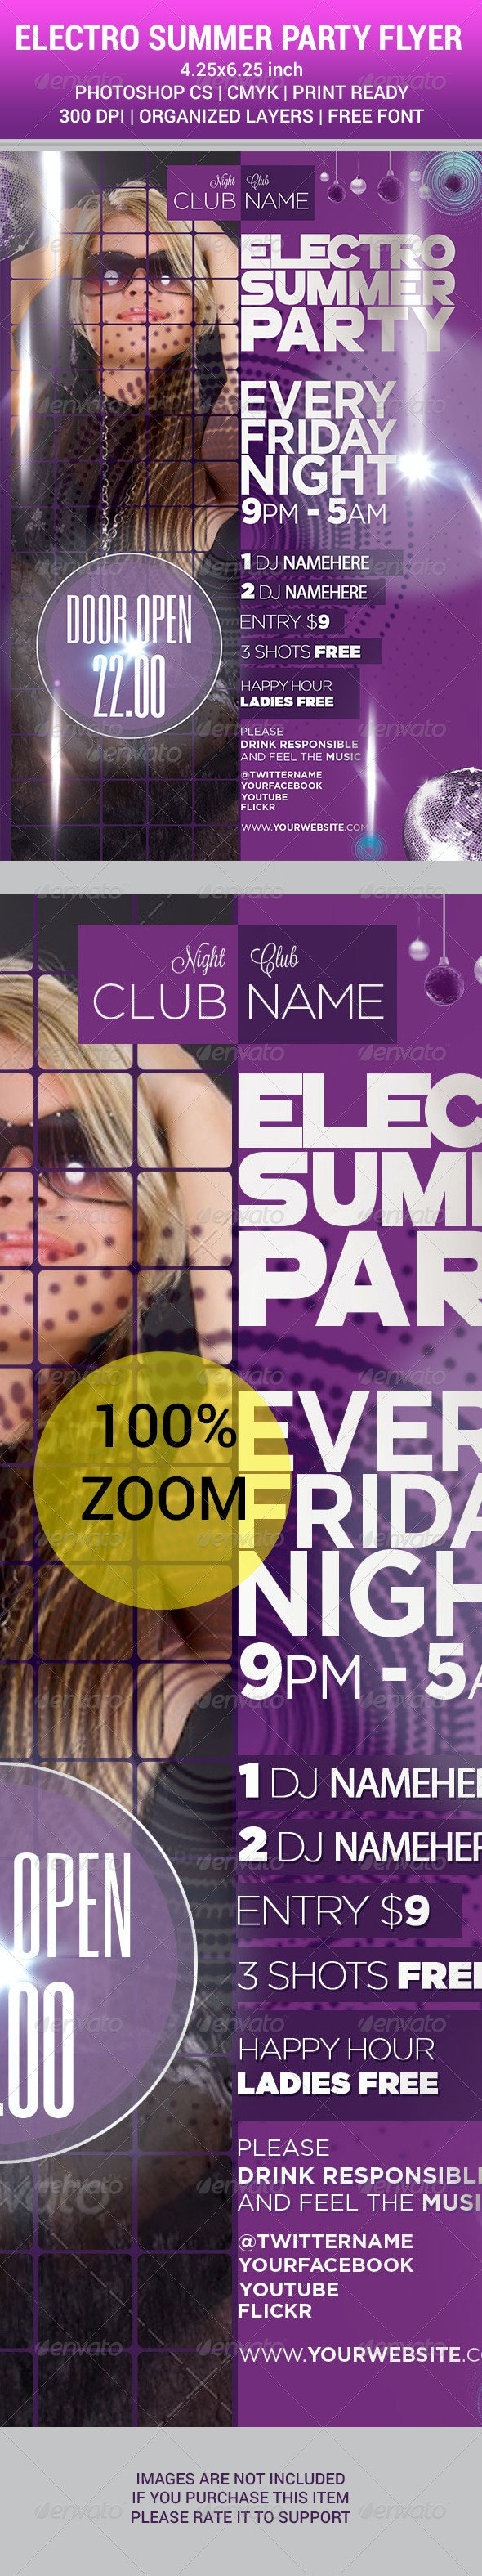 ELECTRO SUMMER PARTY 2014 Flyer - Clubs & Parties Events